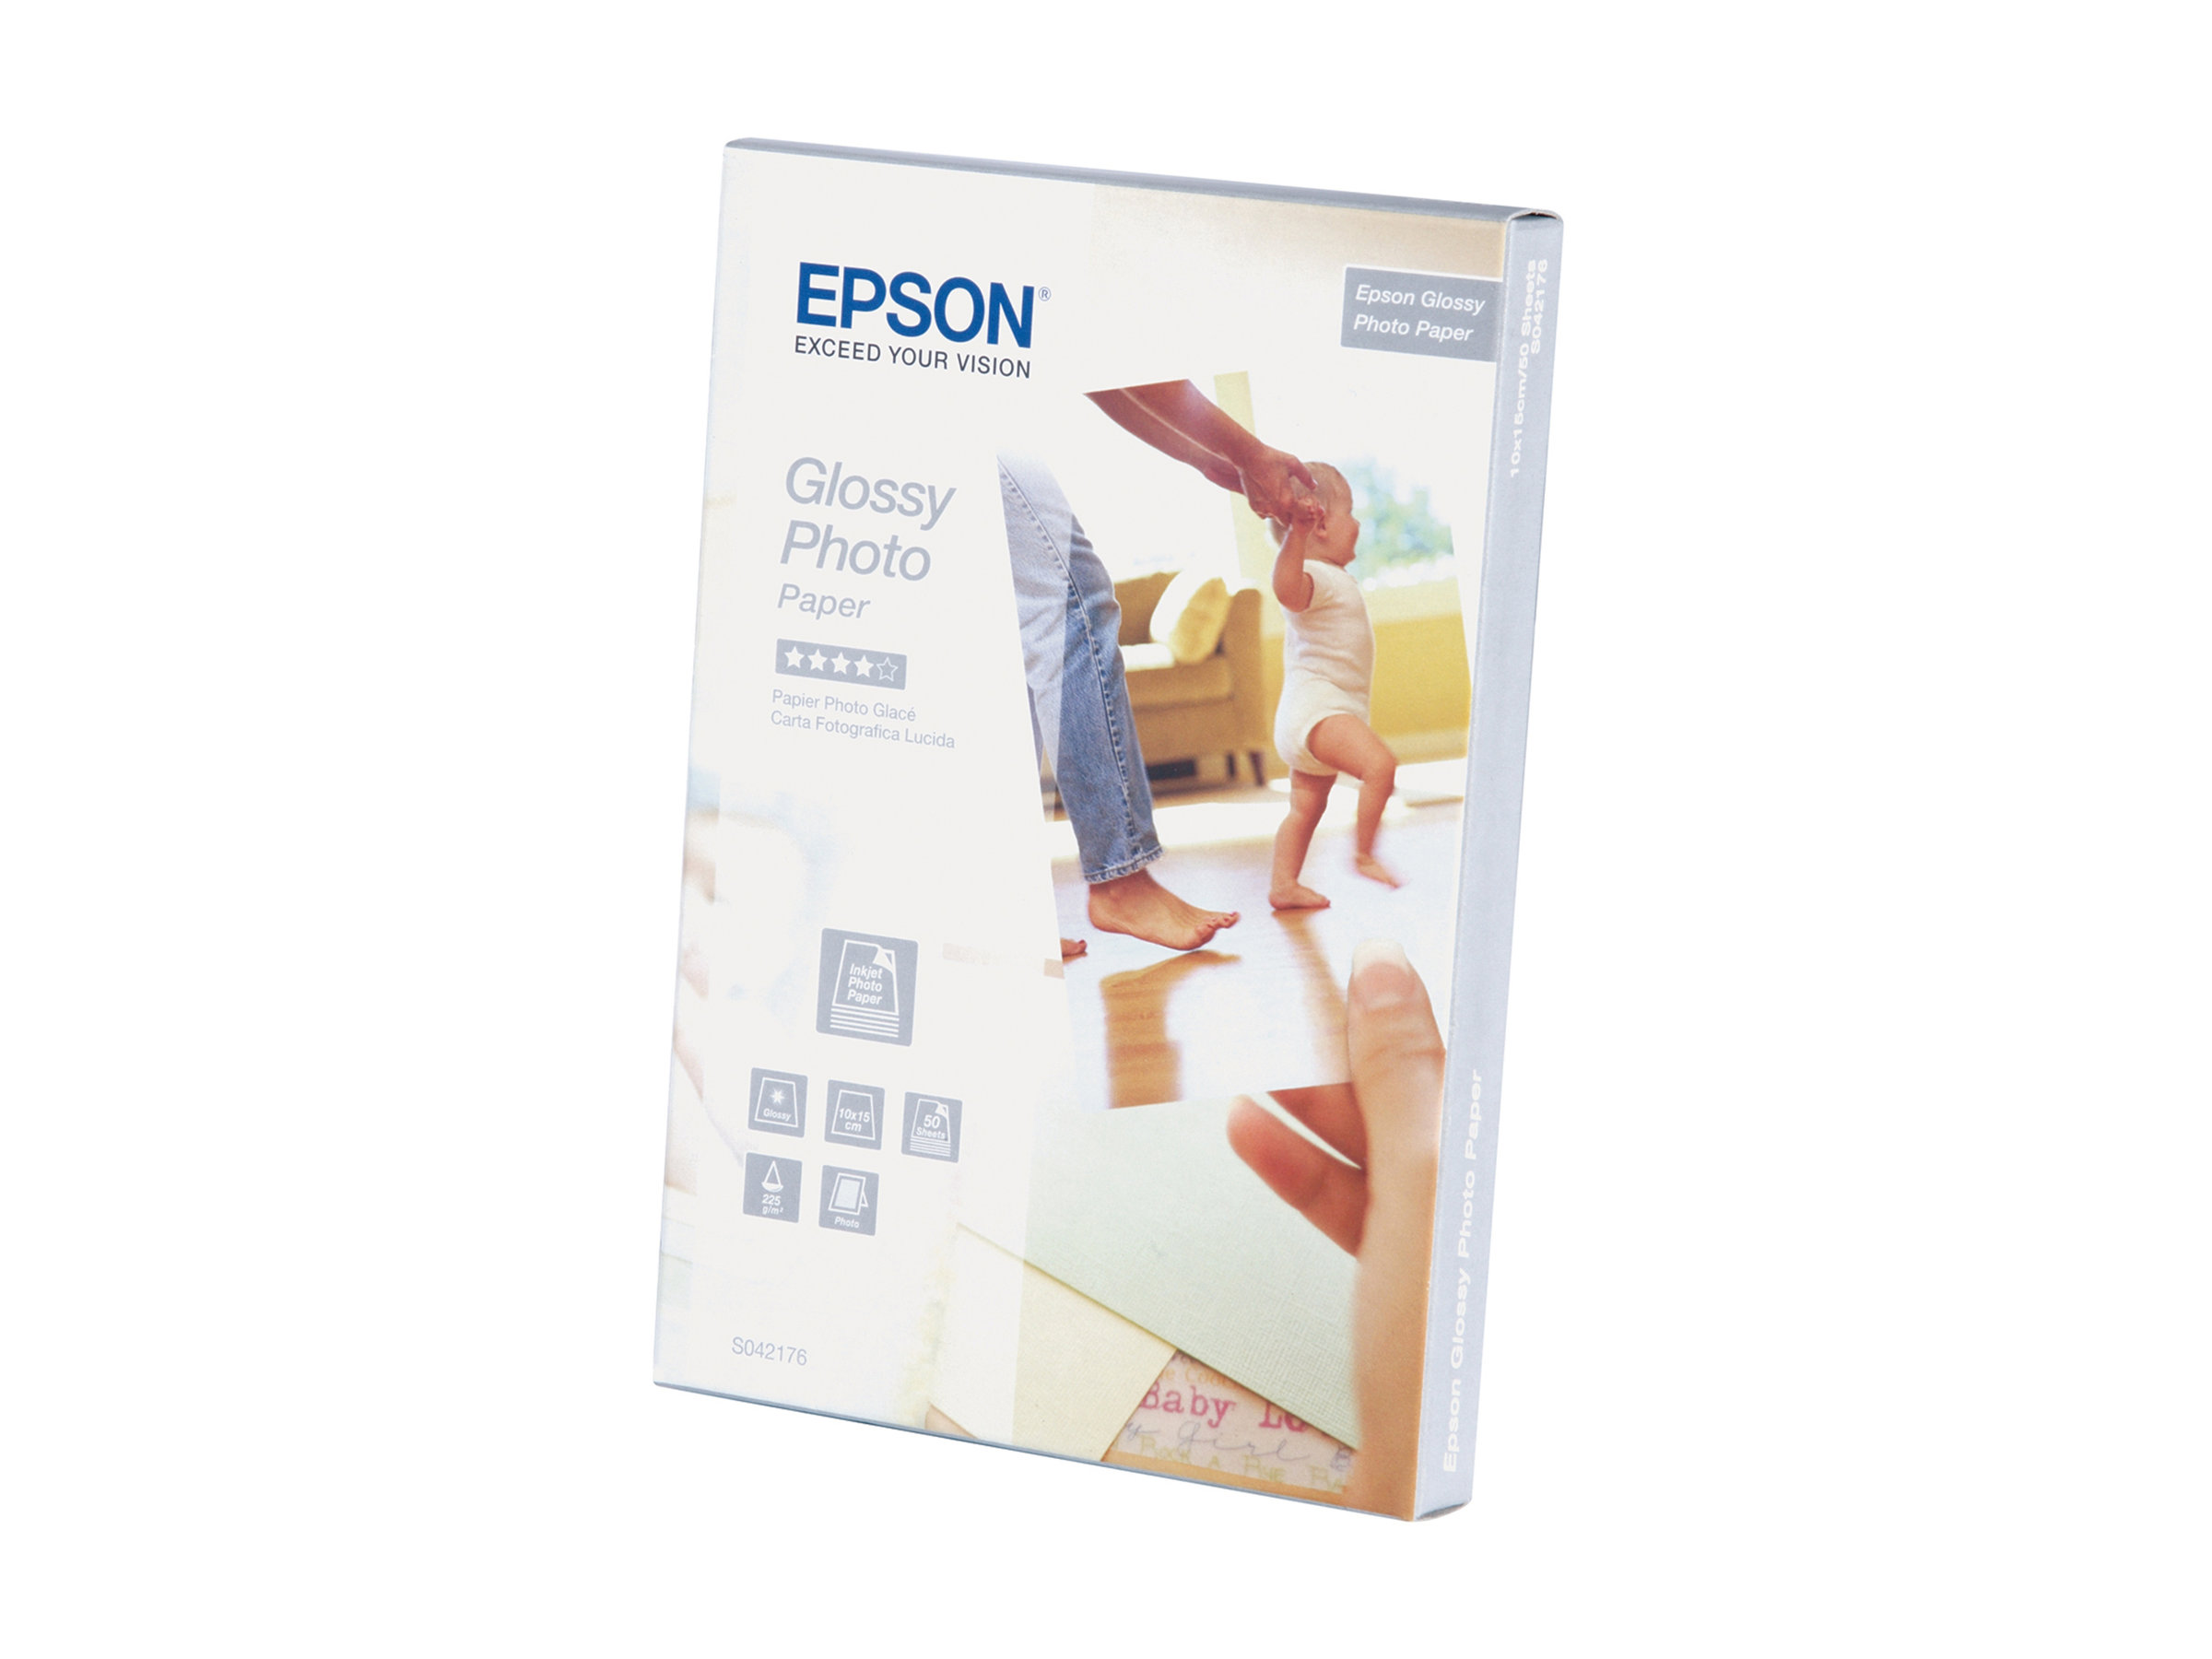 Epson Glossy Photo Paper - papier photo - 20 feuille(s)